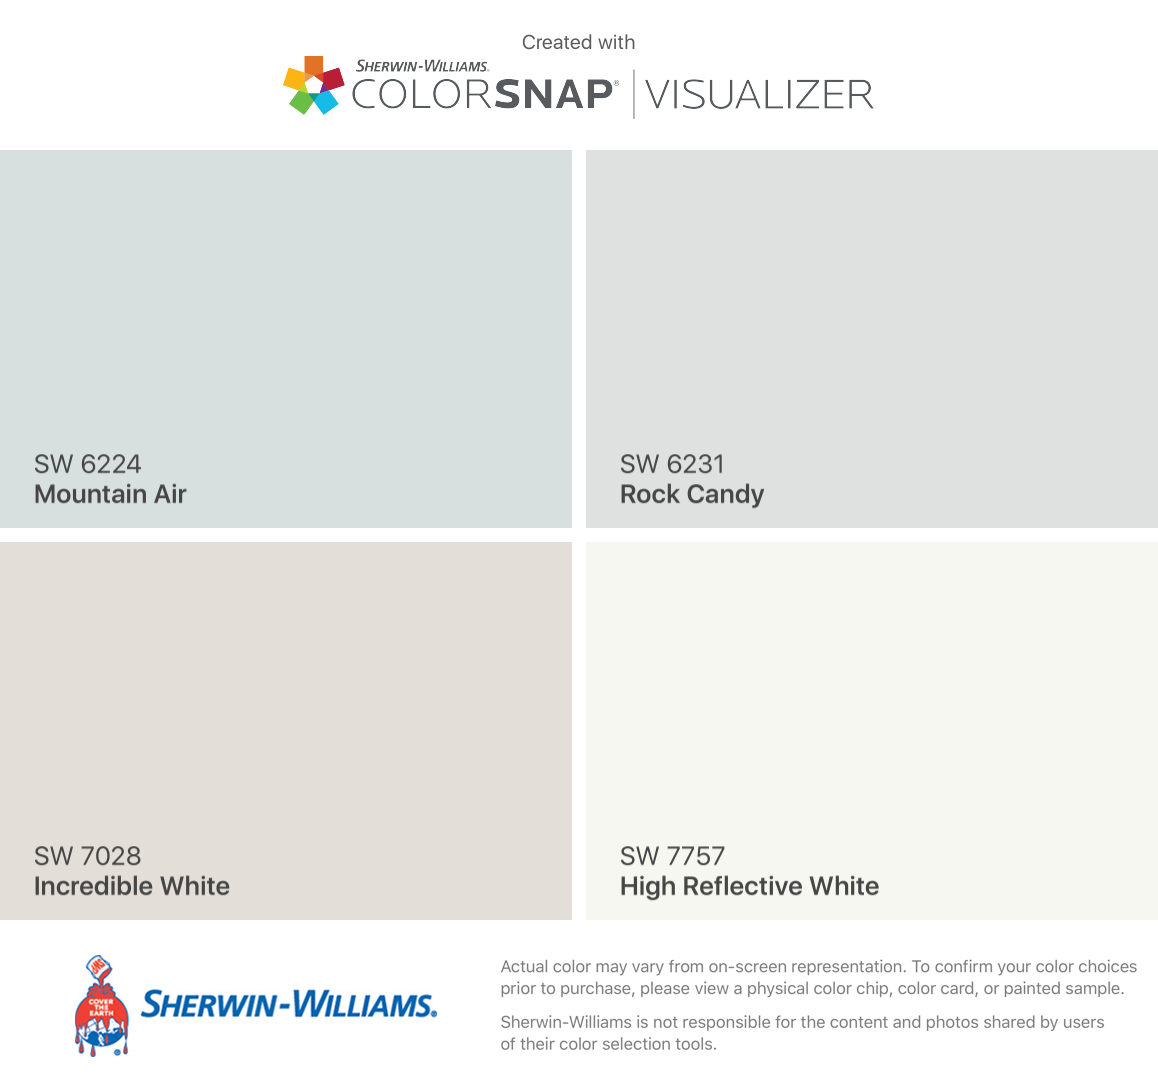 I Found These Colors With Colorsnap Visualizer For Iphone By Sherwin Williams Mou Eider White Sherwin Williams Sherwin Williams Sherwin Williams Paint Colors